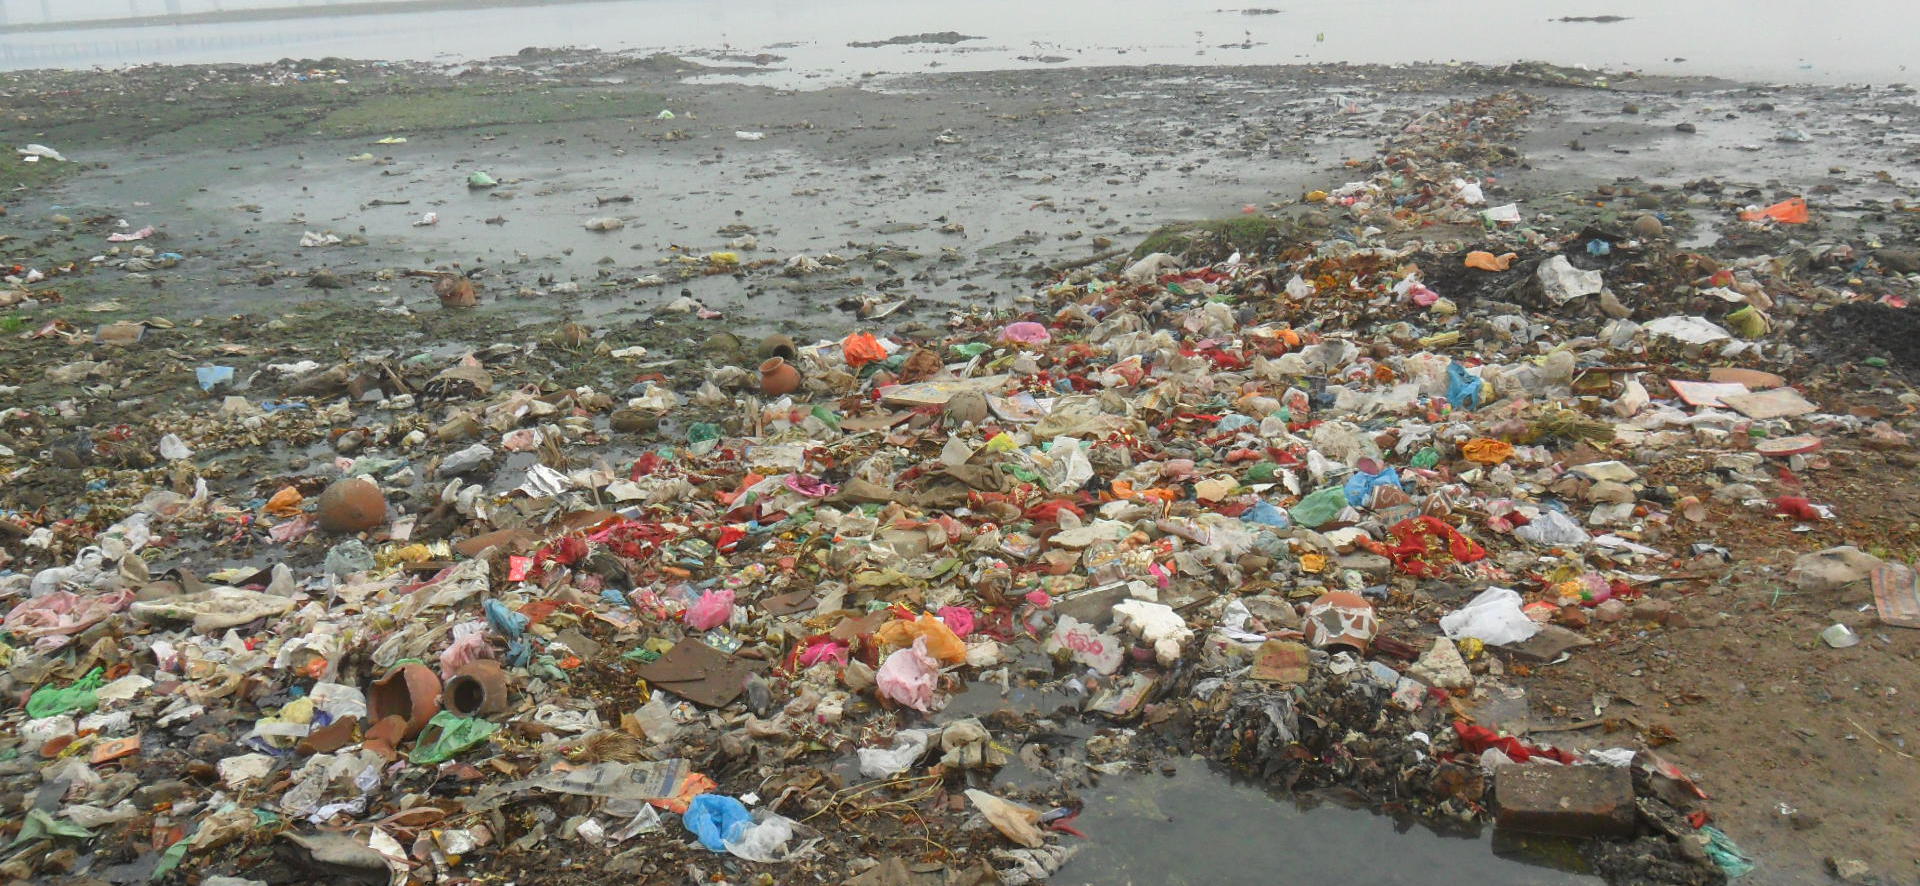 solid waste management in india environmental Solid waste management projects get blanket exemption from taking prior green clearance by nidhi sharma , et bureau| updated: jul 17, 2017, 1251 am ist 0comments the environment ministry has spelt out waste to energy plants up to a capacity of 15mw would not require any environmental clearance.